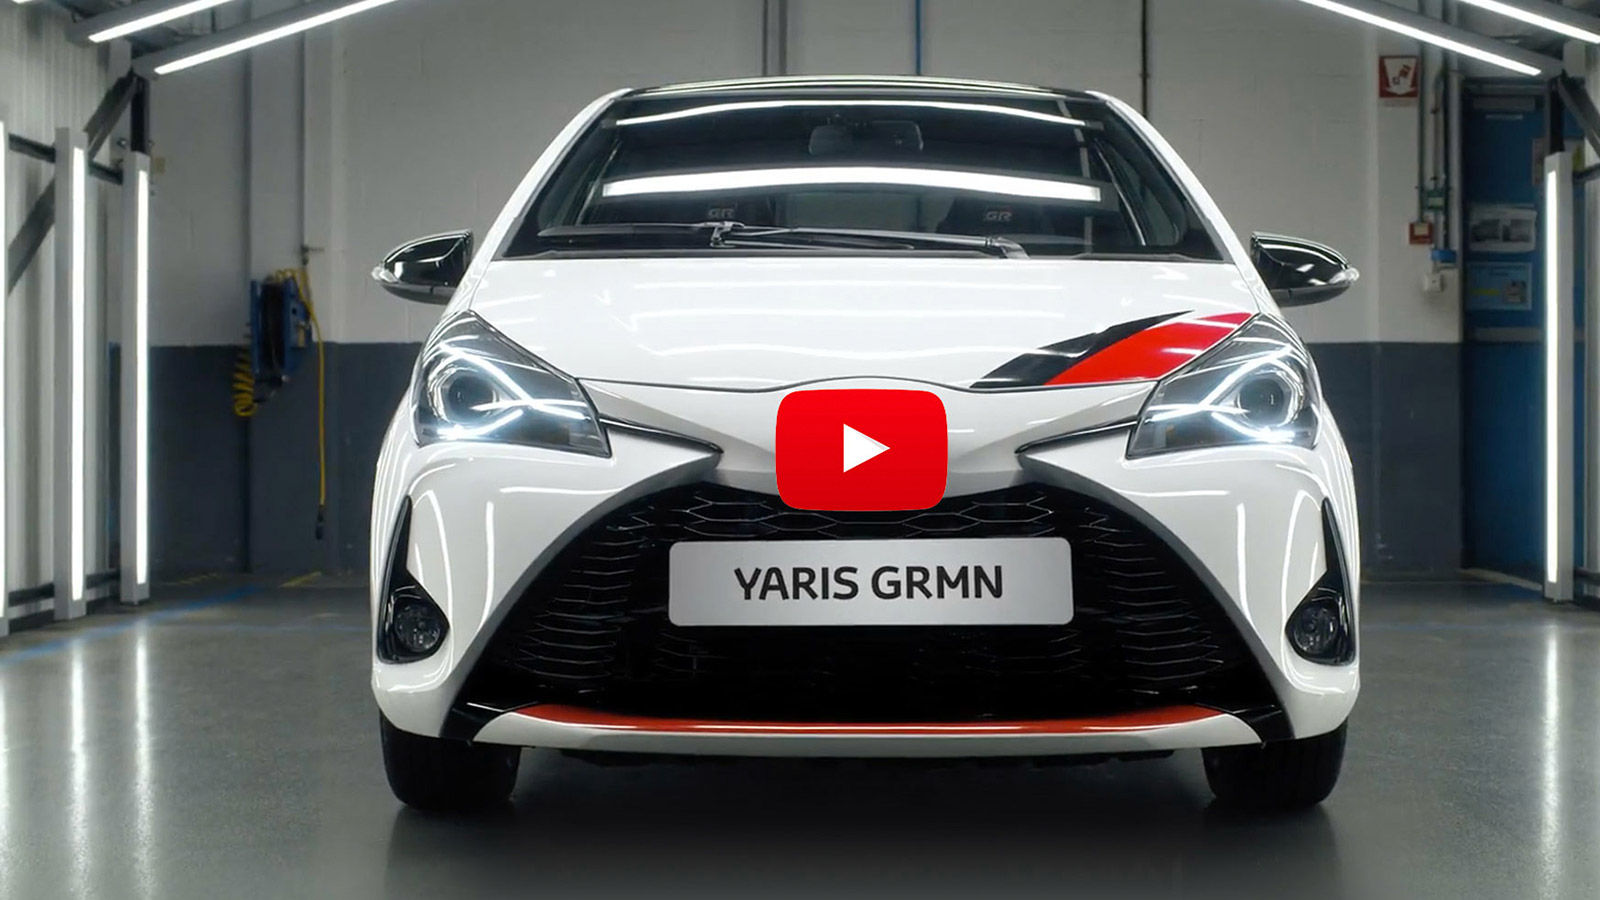 harga toyota new yaris trd 2014 all vellfire grmn limited edition told from a unique perspective we follow the journey of first through our factory forging its race bred body right to test